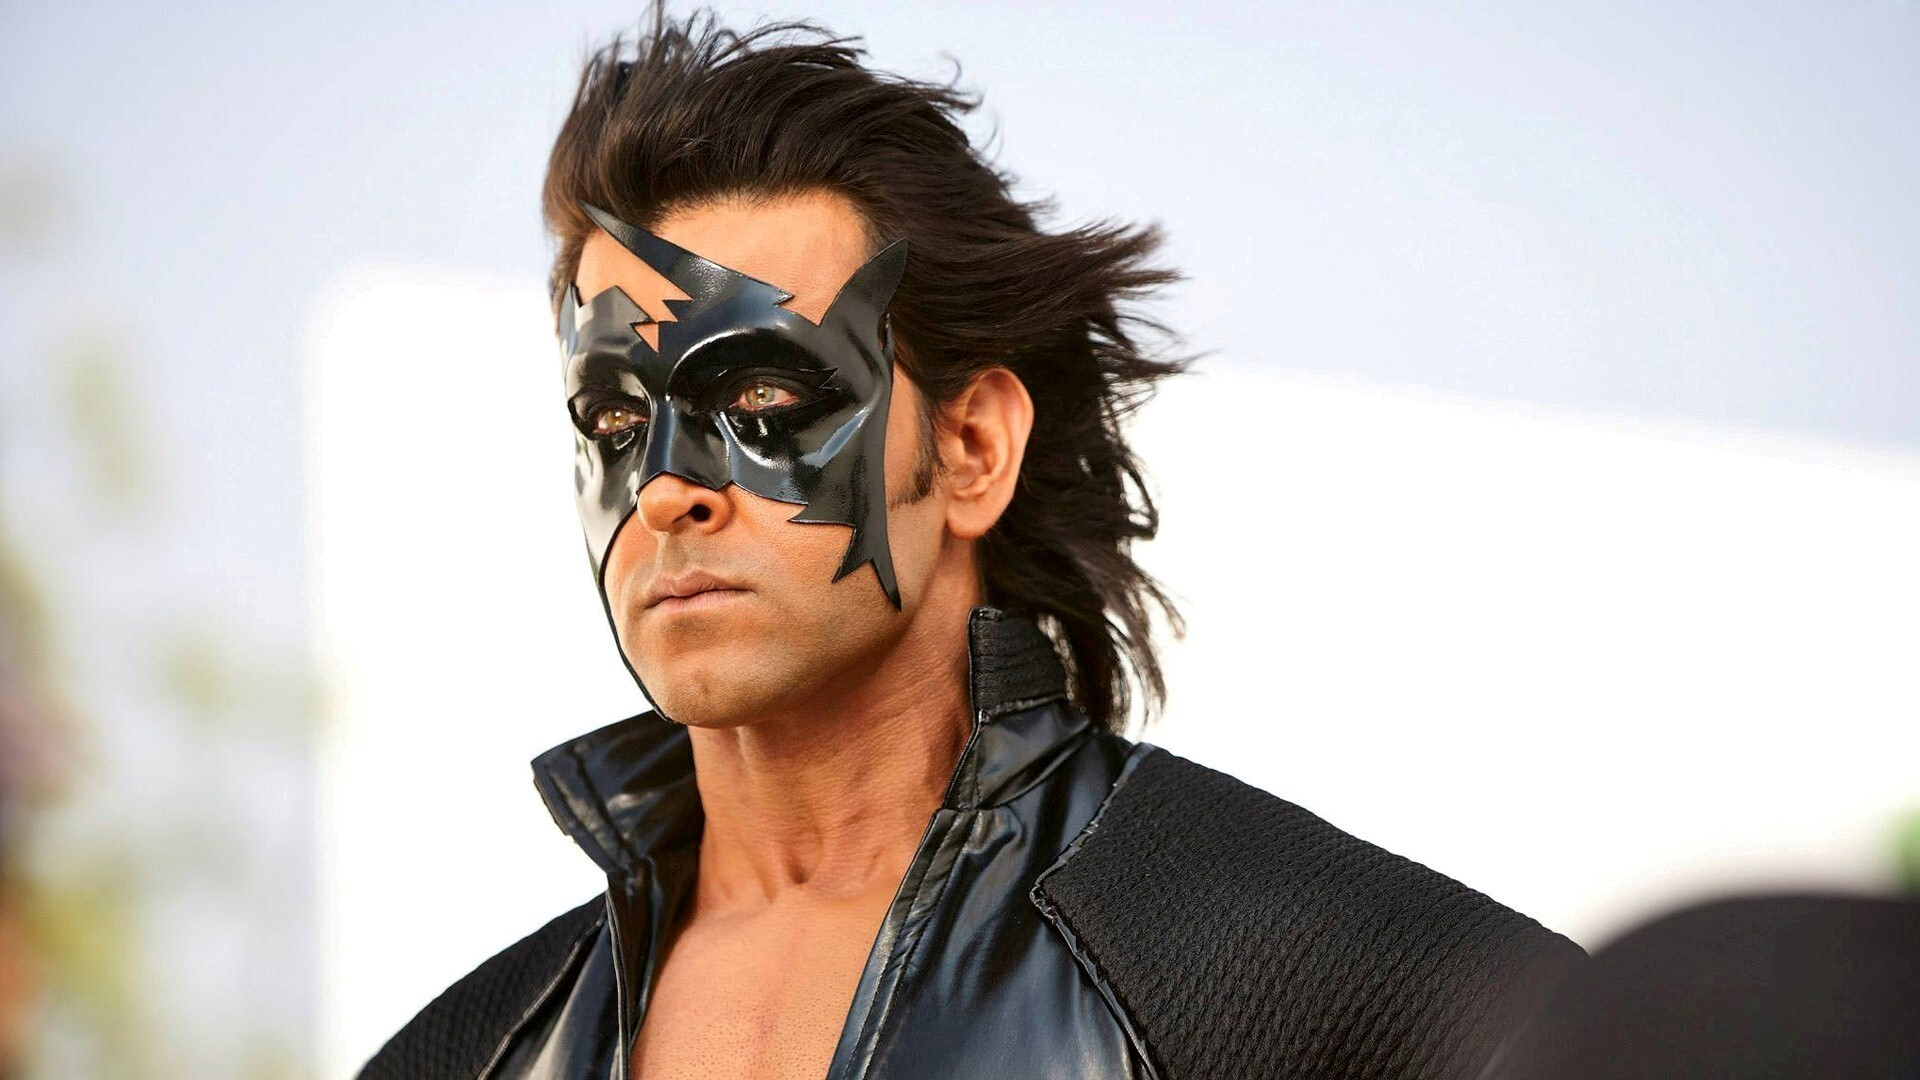 Movie Krrish 3 Hrithik Roshan Wallpaper